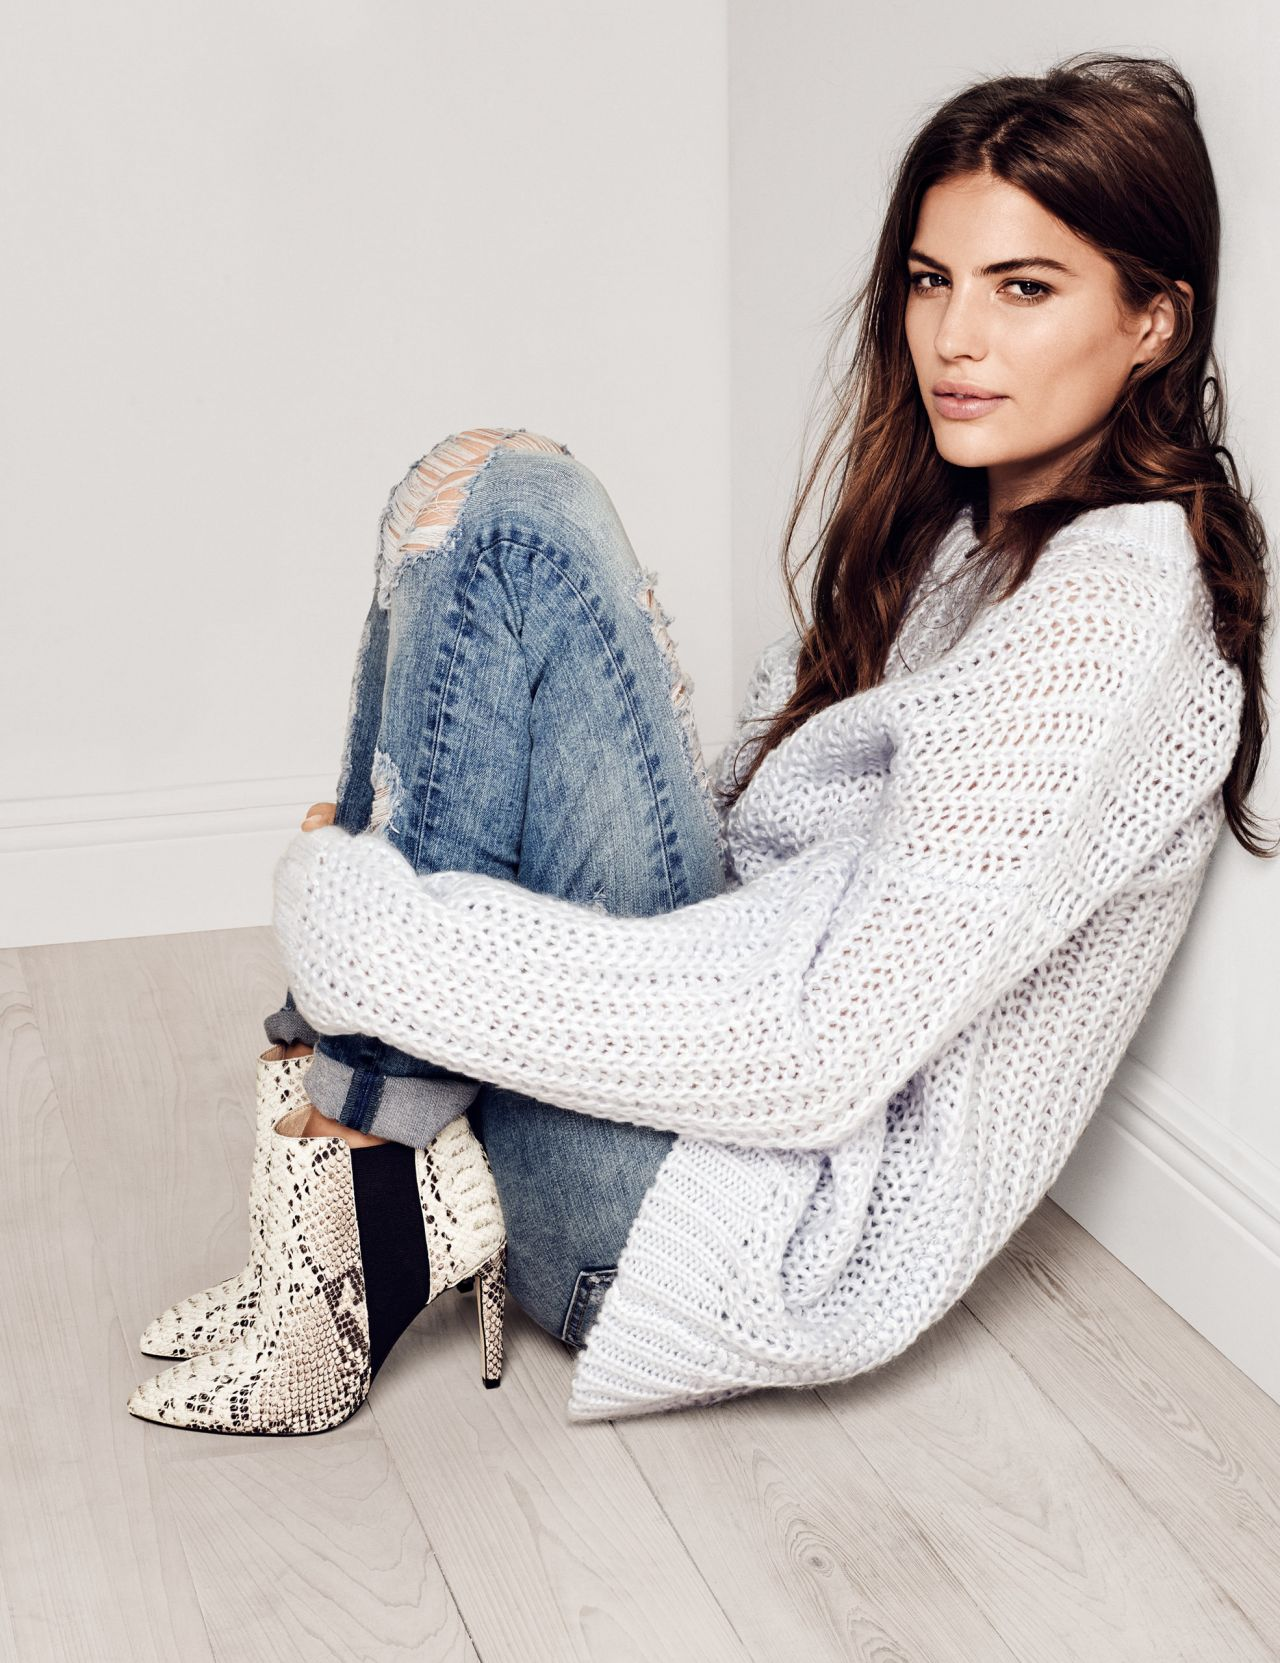 Cameron Russell - H&M 2015 Photos